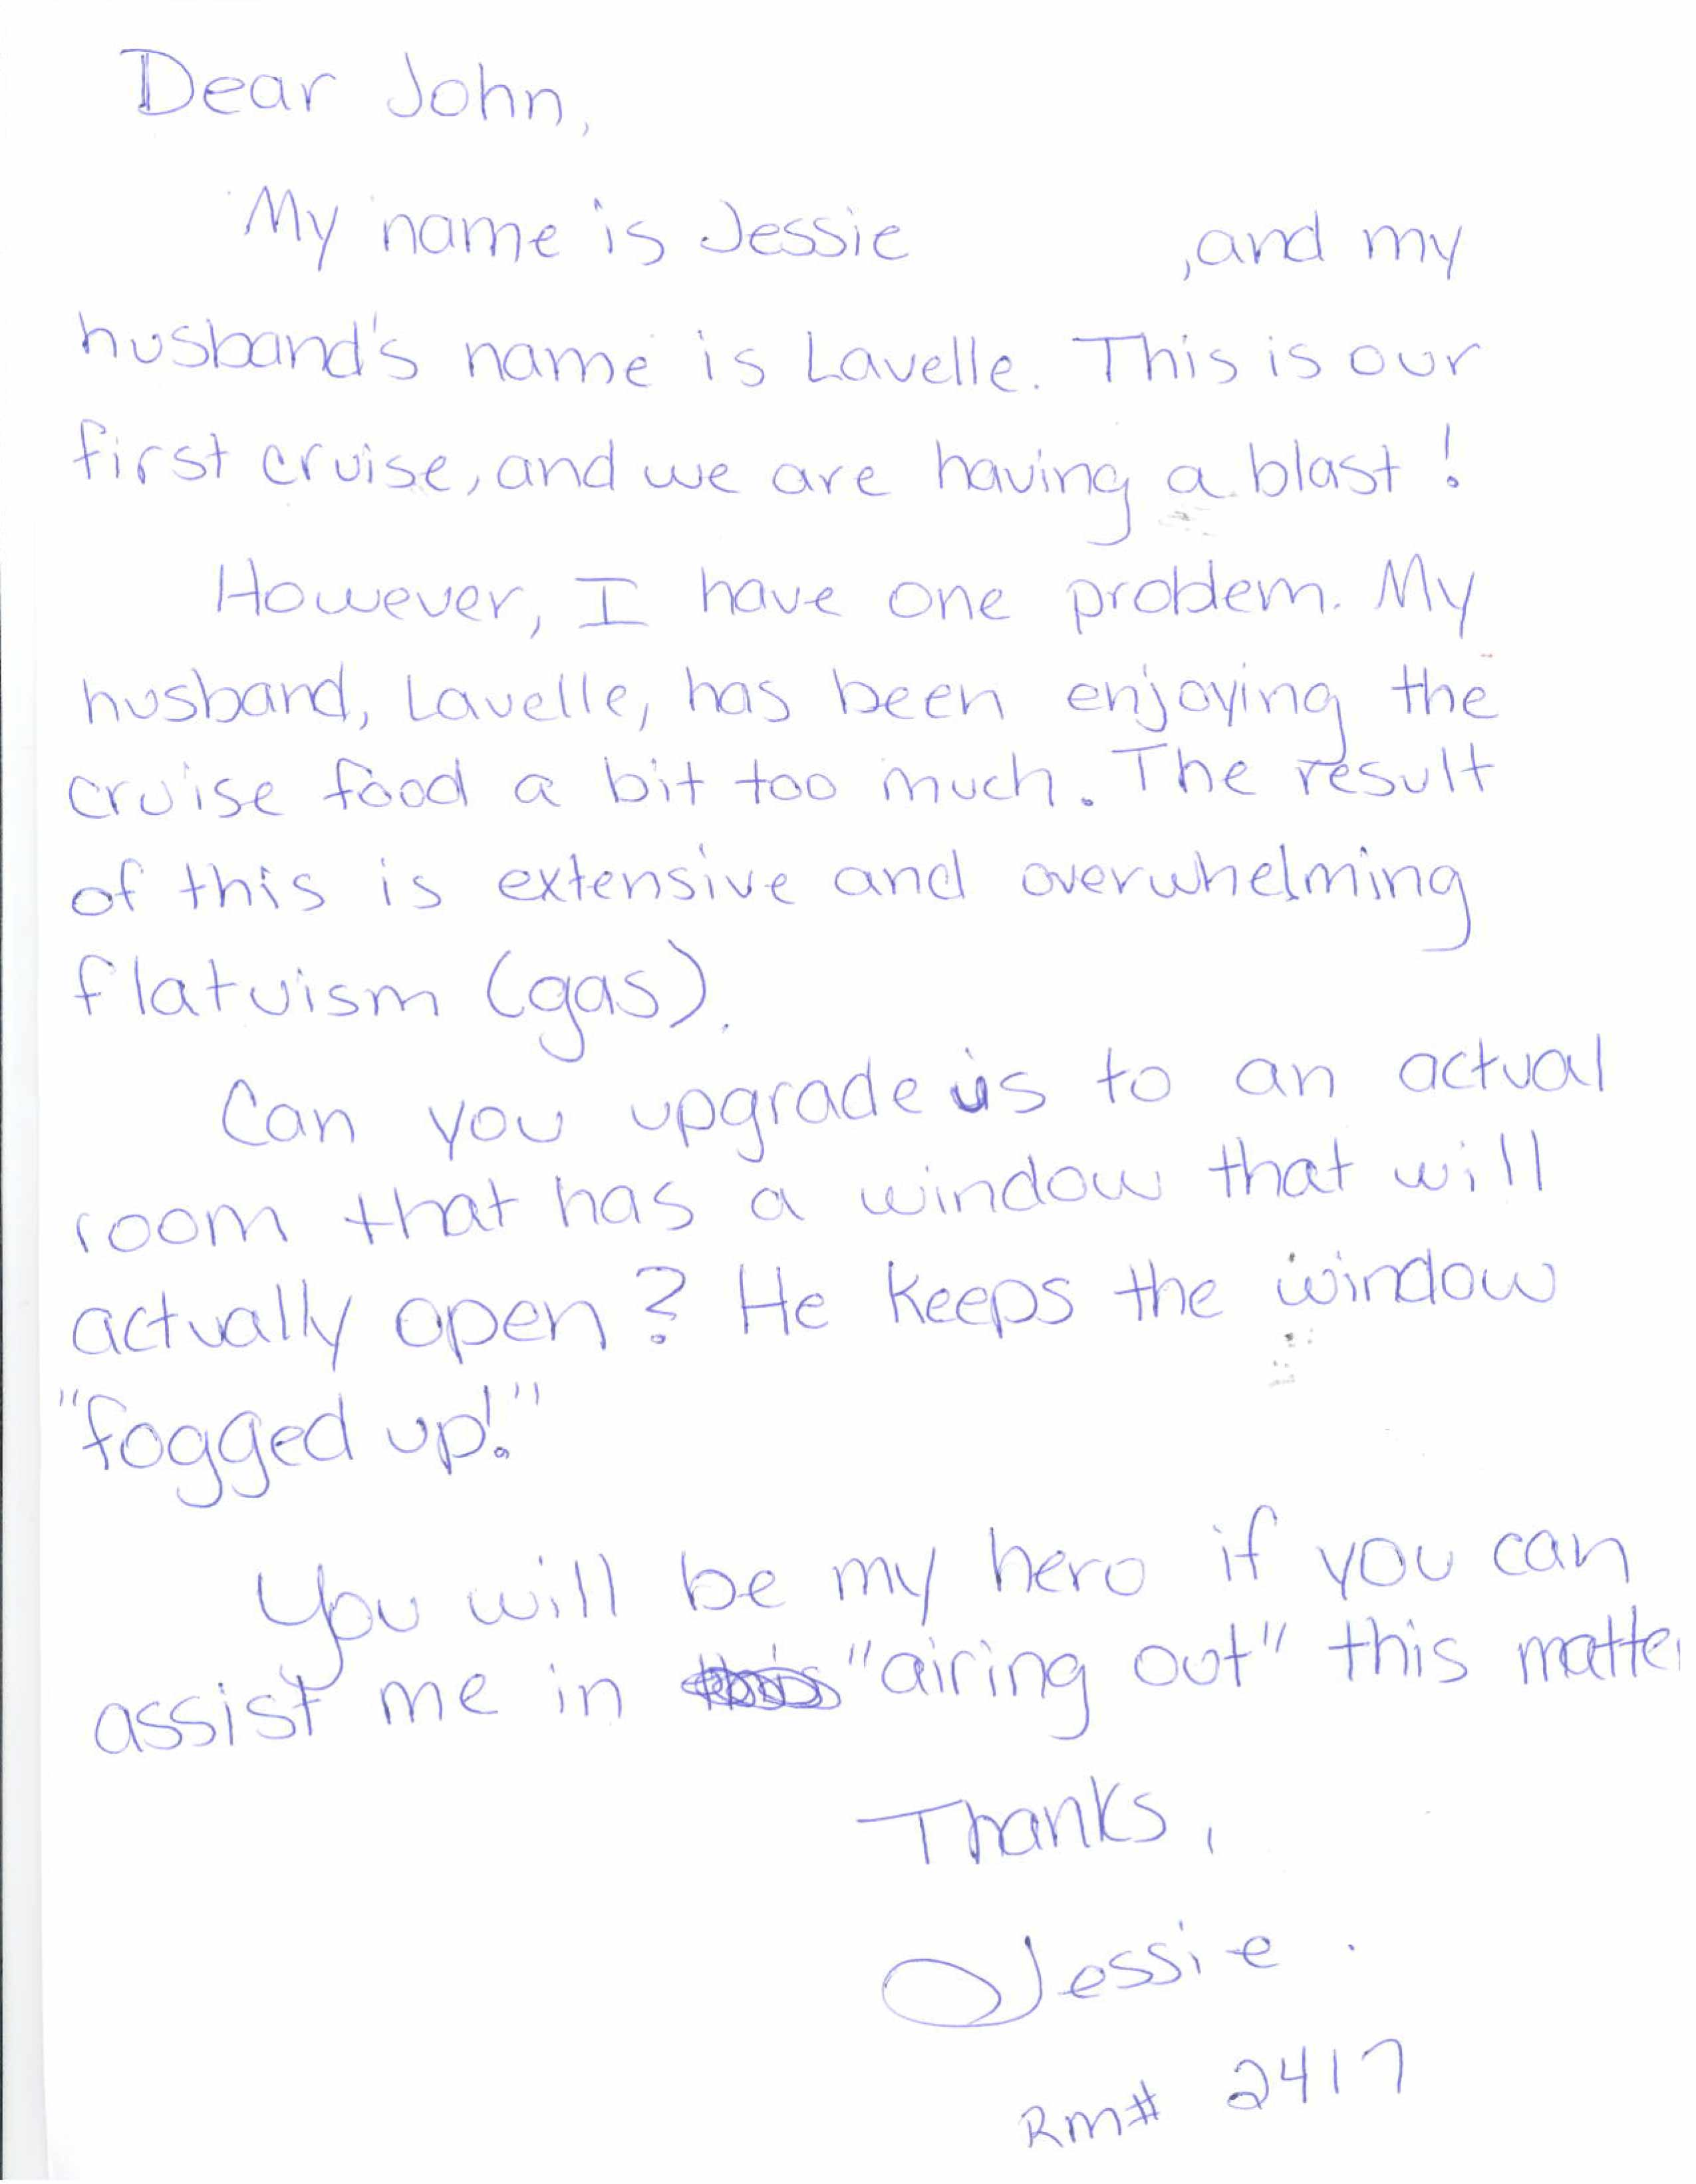 Cancellation Letter Massage Envy Welcome Integrity